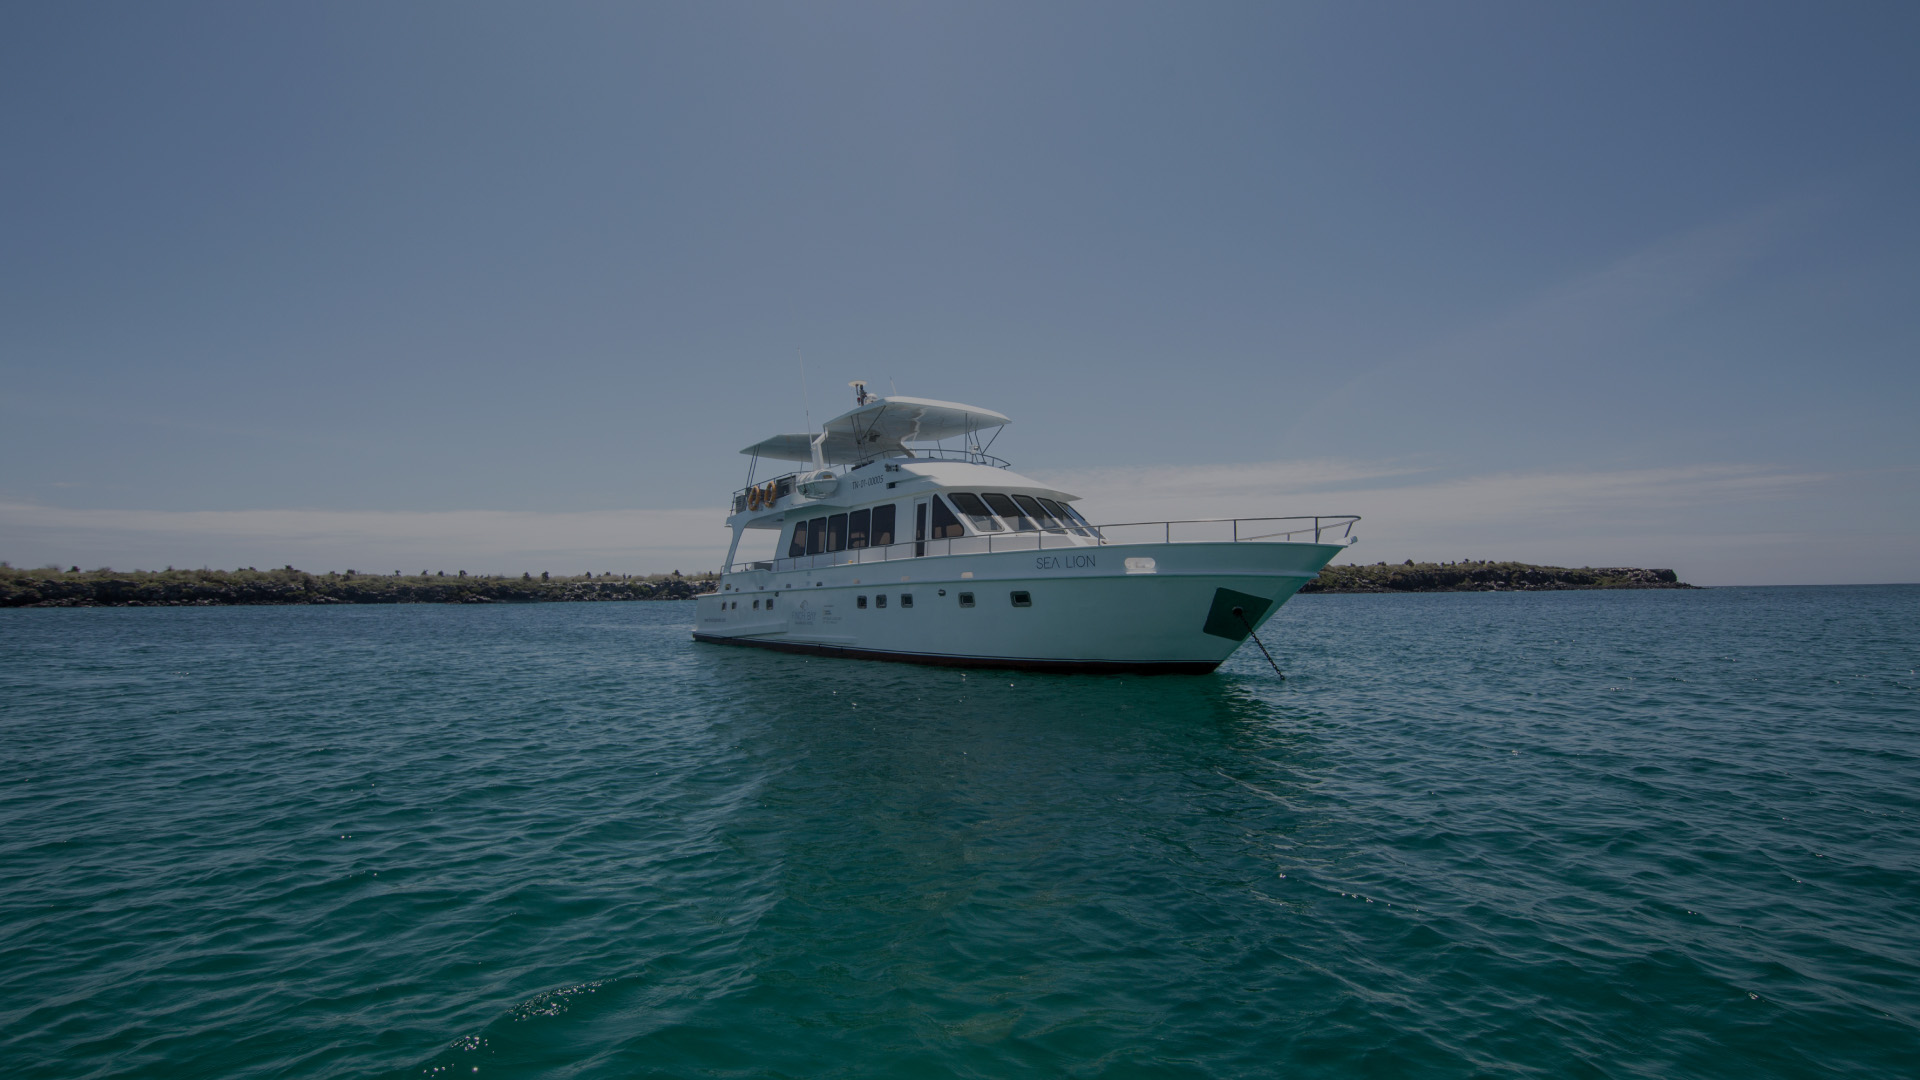 Sea Lion Yacht in the Galapagos Islands